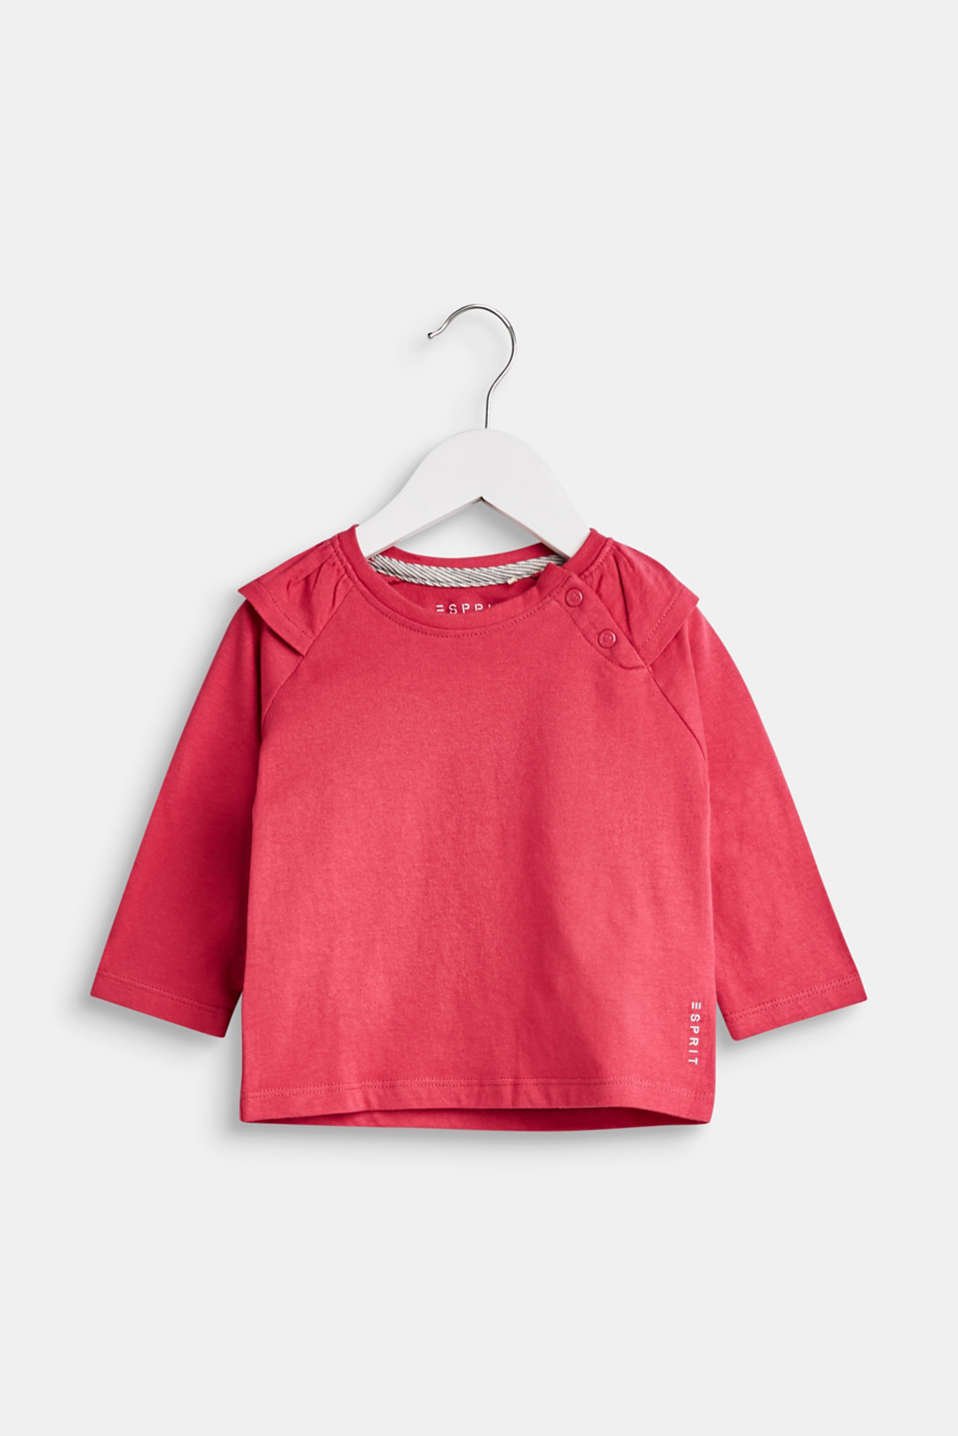 Esprit - Long sleeve top with flounces, 100% cotton